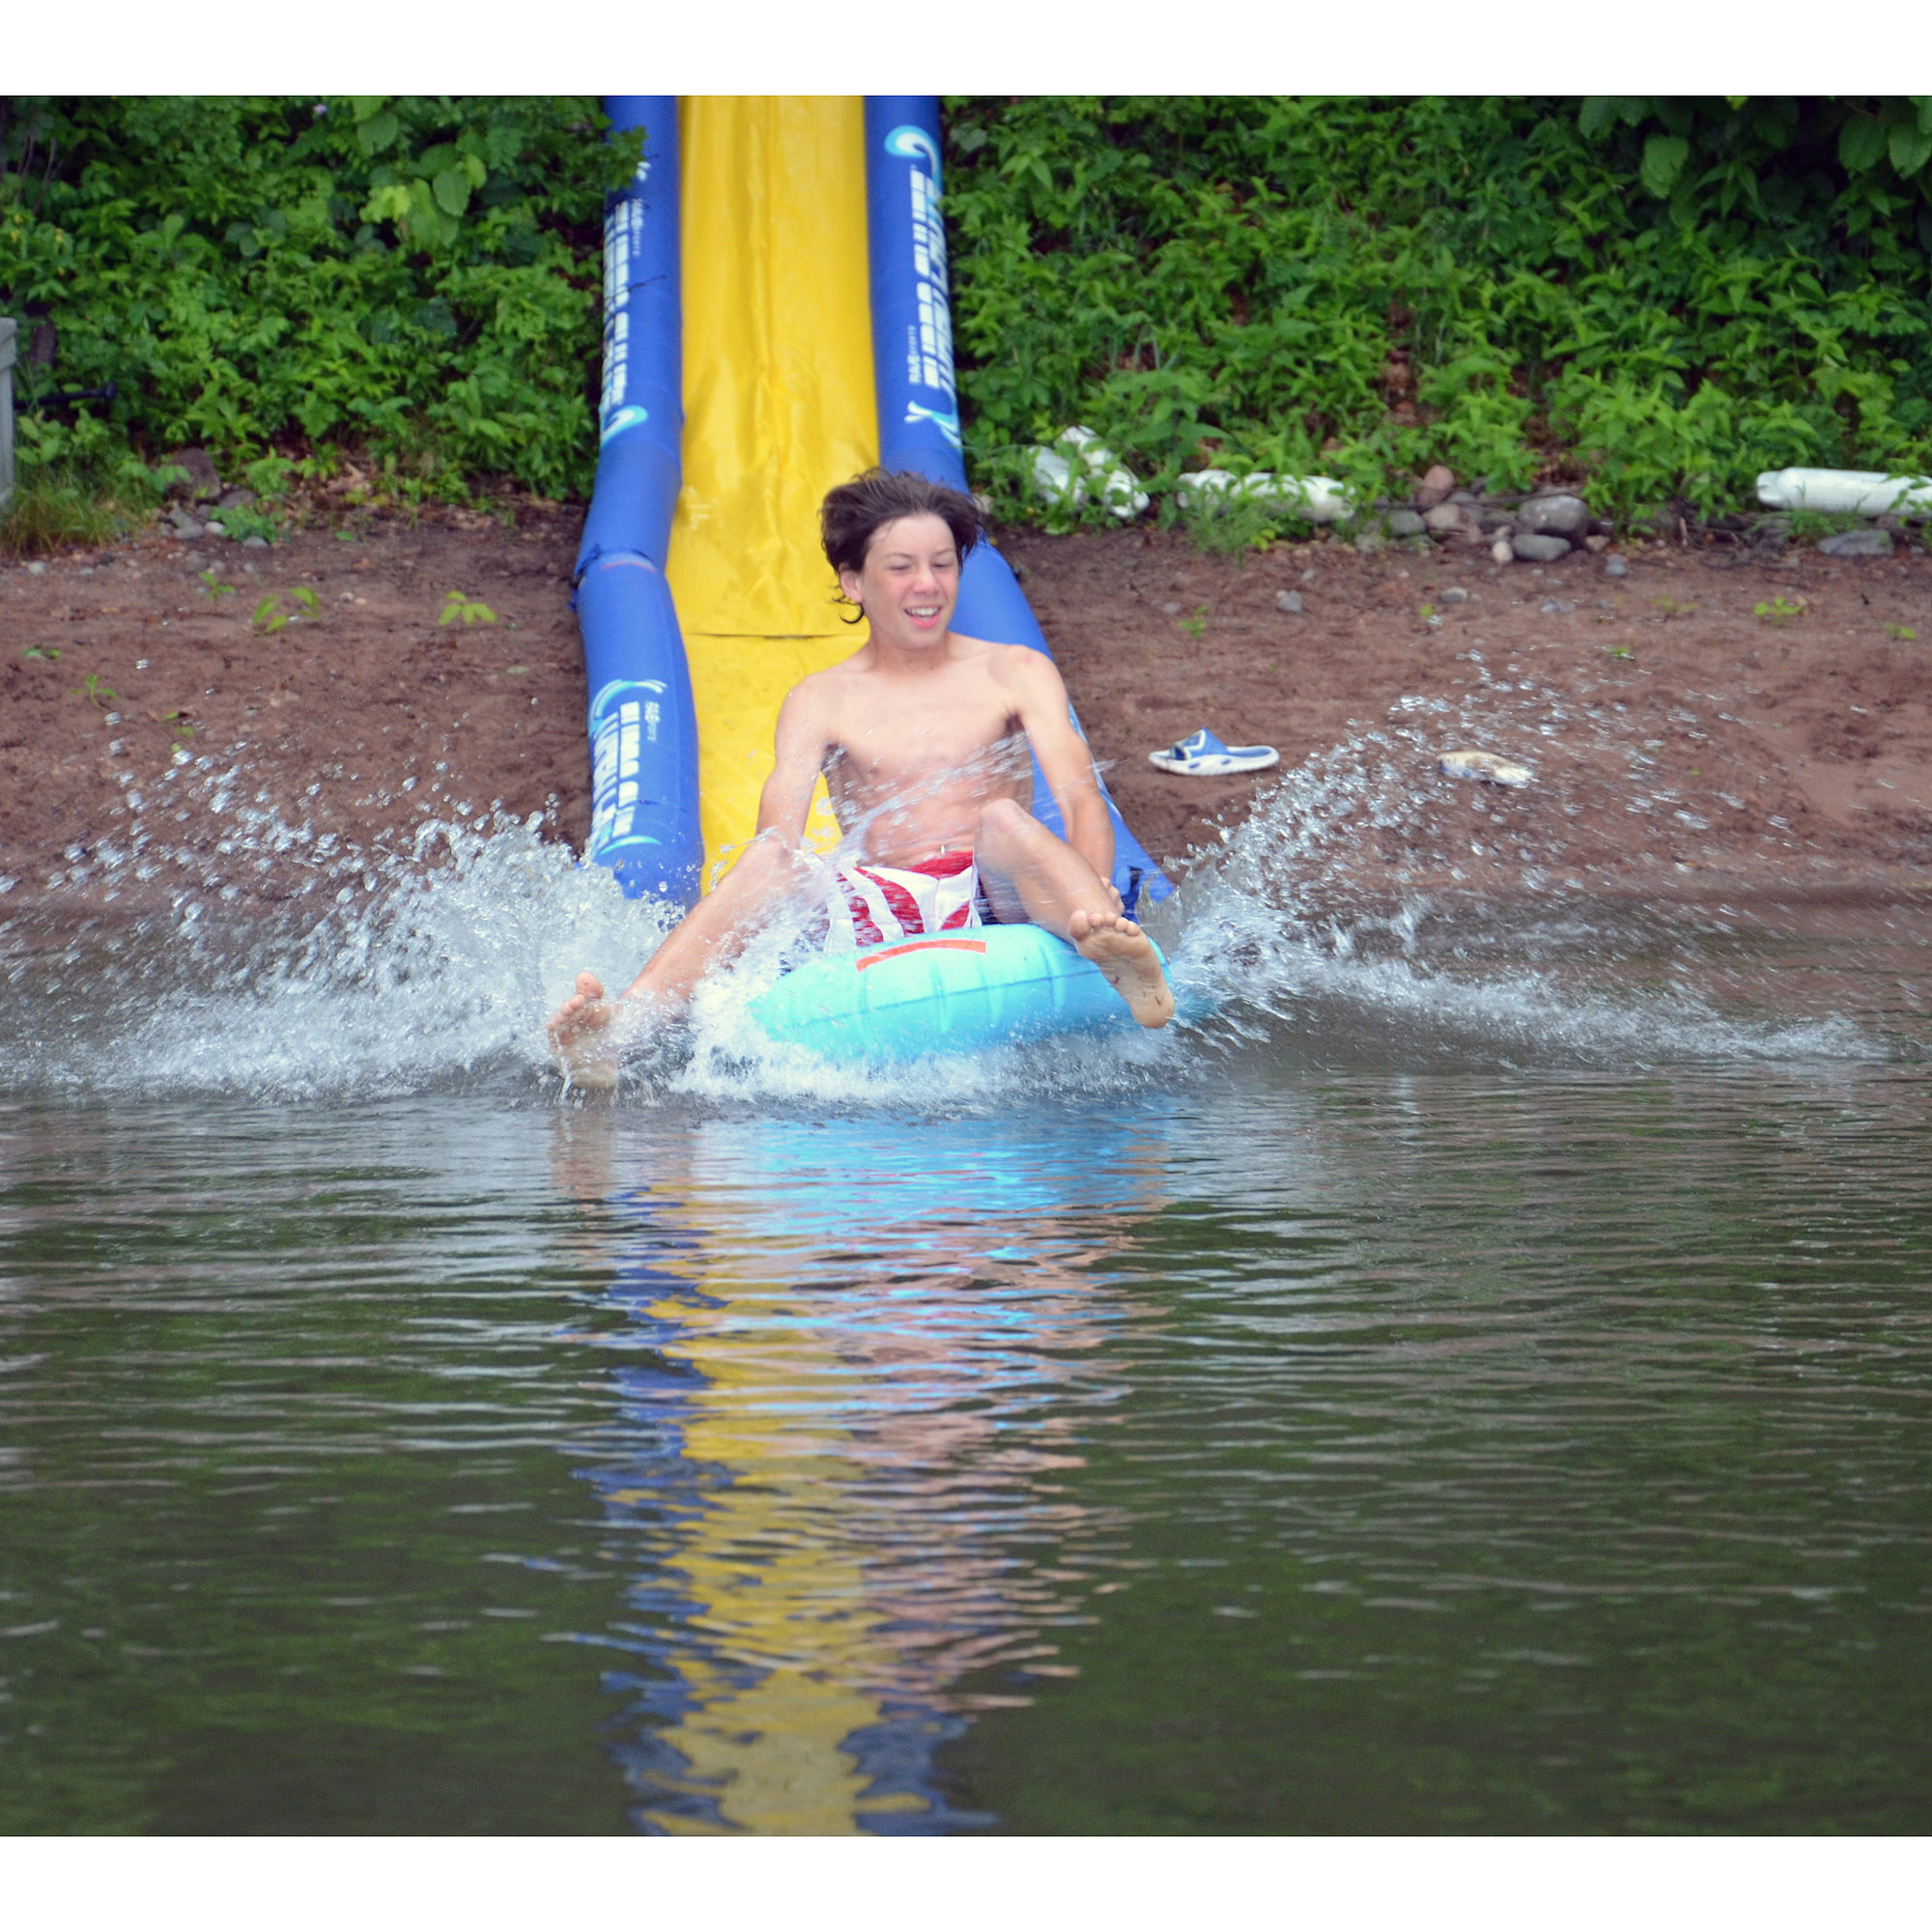 Rave Sports Tubo Chute Waterslide Lakeshore Package by Rave Sports